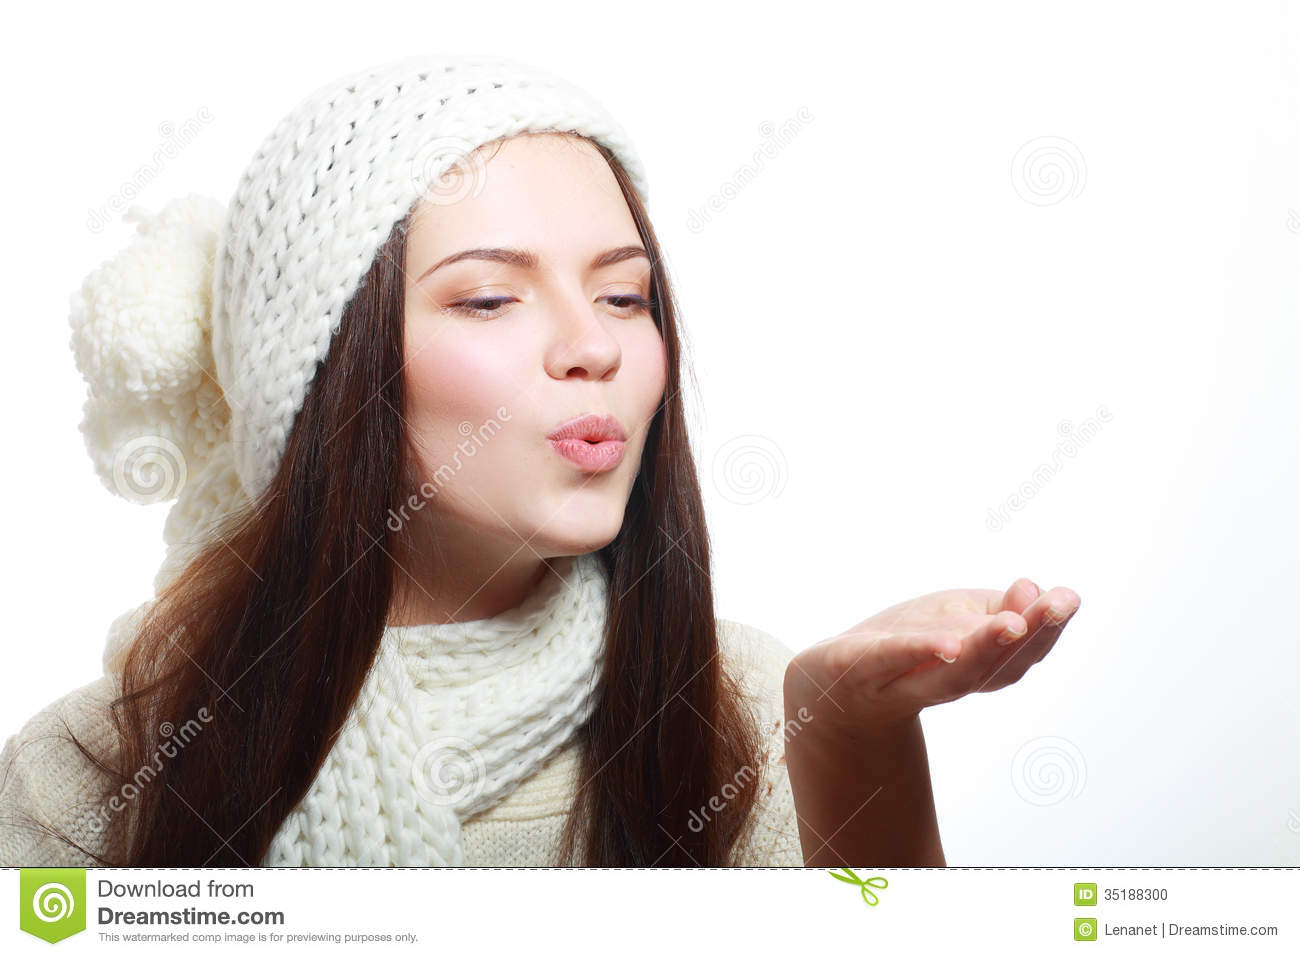 woman-blowing-palms-christmas-x-mas-people-happiness-concept-happy-winter-clothes-35188300.jpg